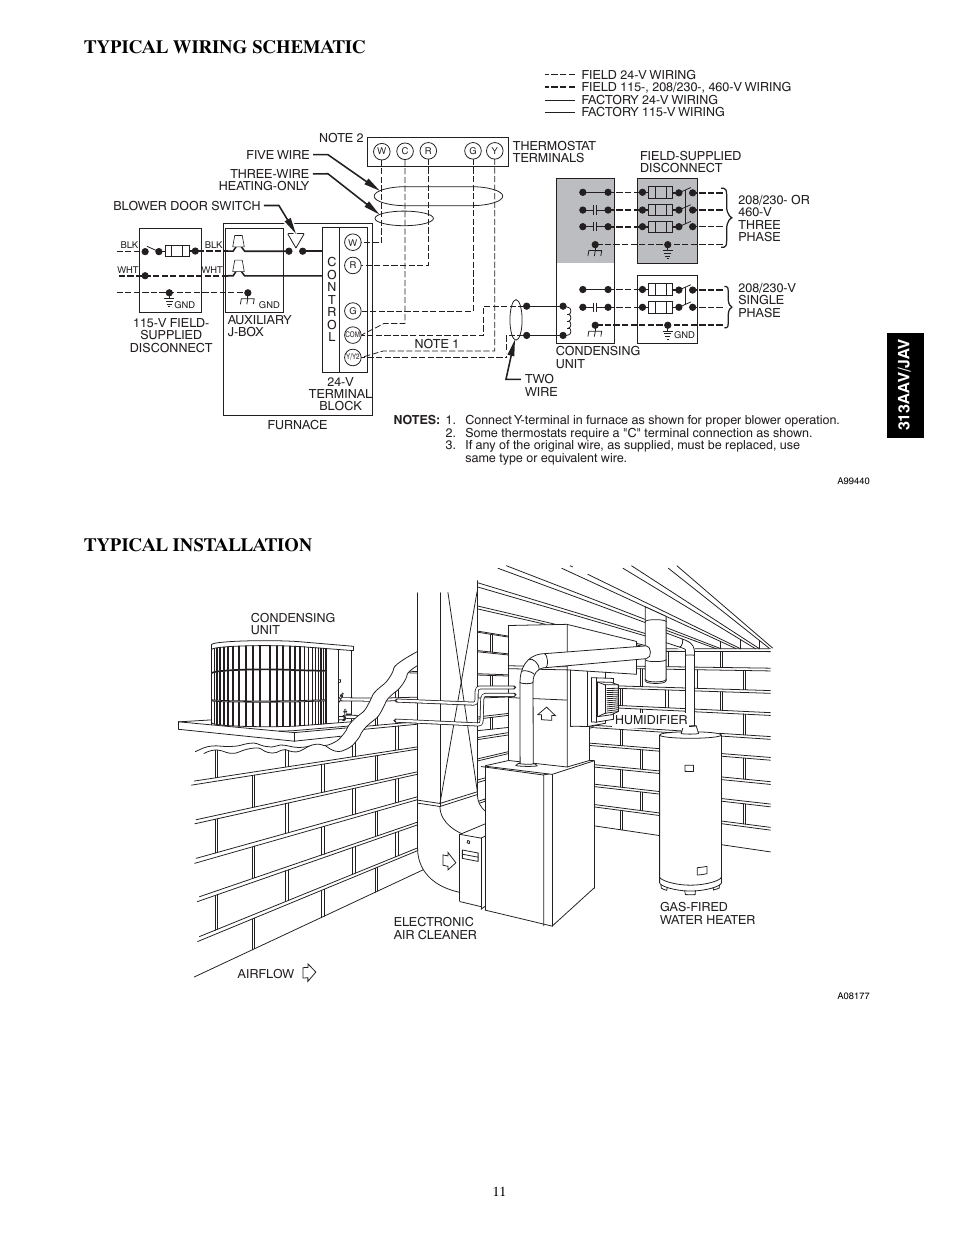 Typical Wiring Schematic Installation Bryant 313aav Jav Humidifier Diagram User Manual Page 11 12